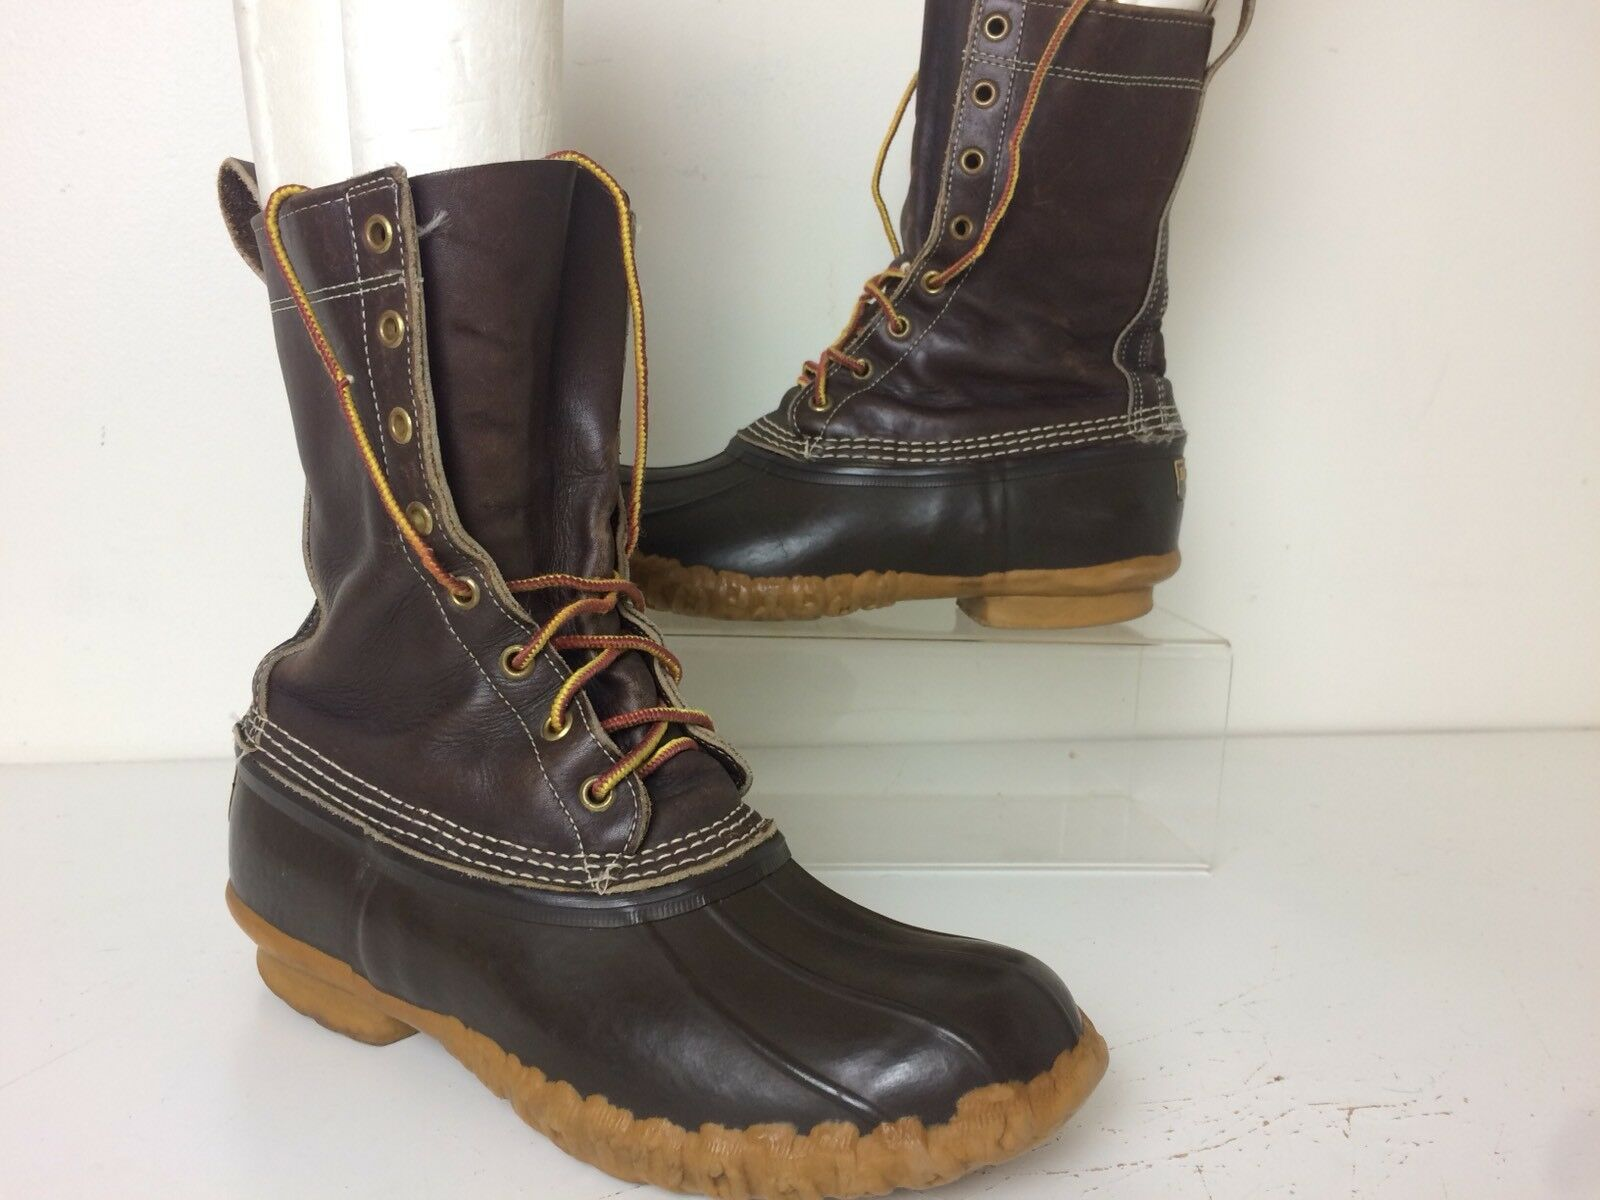 Vintage Men's Bean Boots by L.L.Bean Gumshoe Size 8 Made In USA